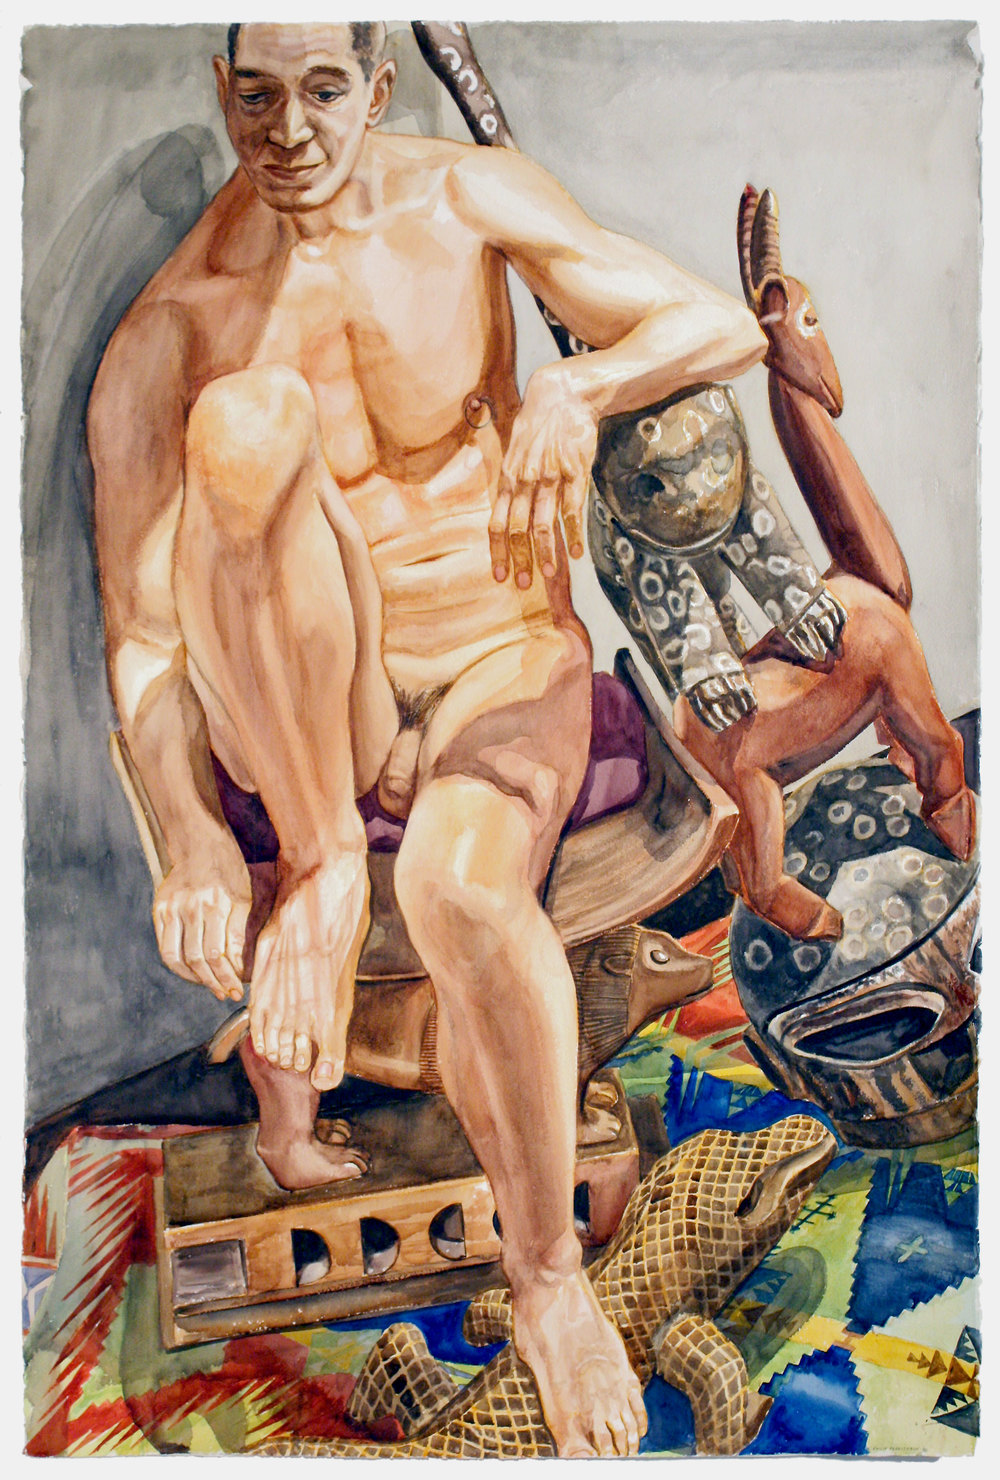 Nude Male with African Carvings , 2010 Watercolor on paper 60 x 40 1/4 inches